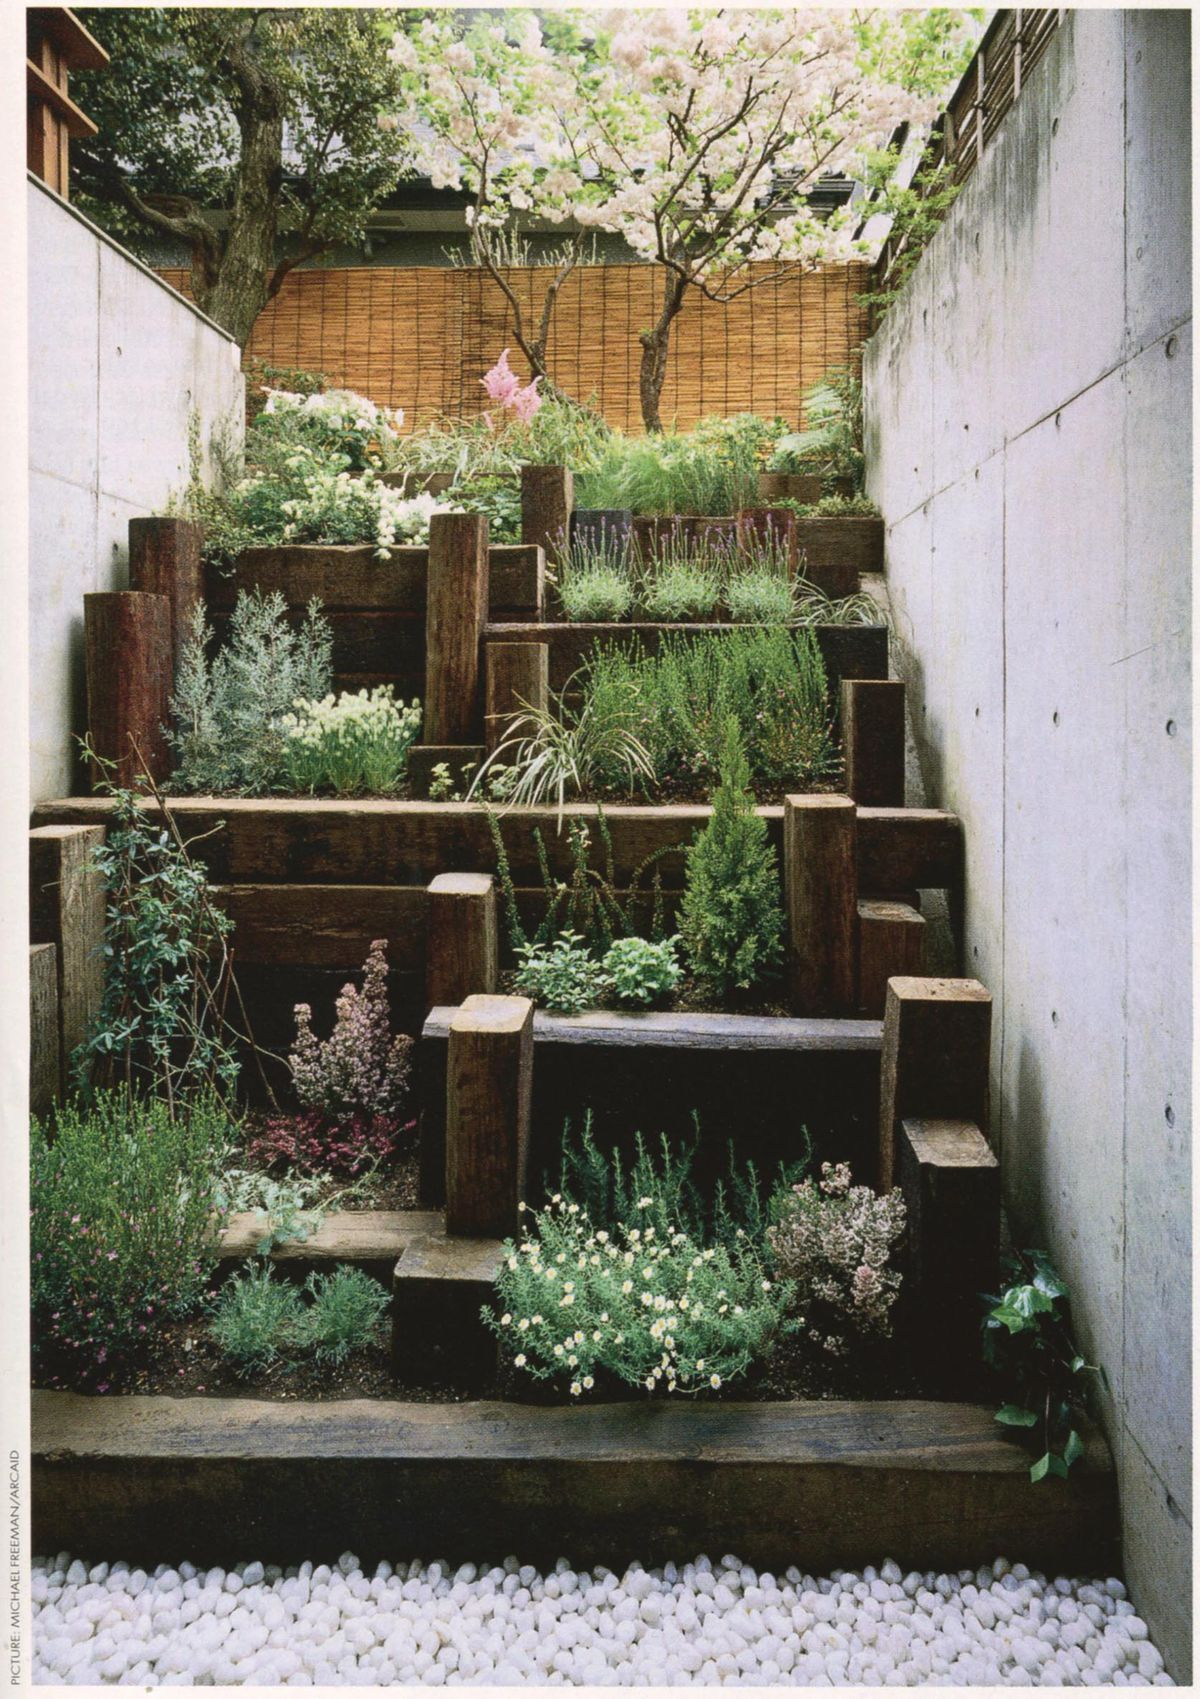 25 beautiful backyard landscaping ideas and gorgeous on beautiful backyard garden design ideas and remodel create your extraordinary garden id=91531